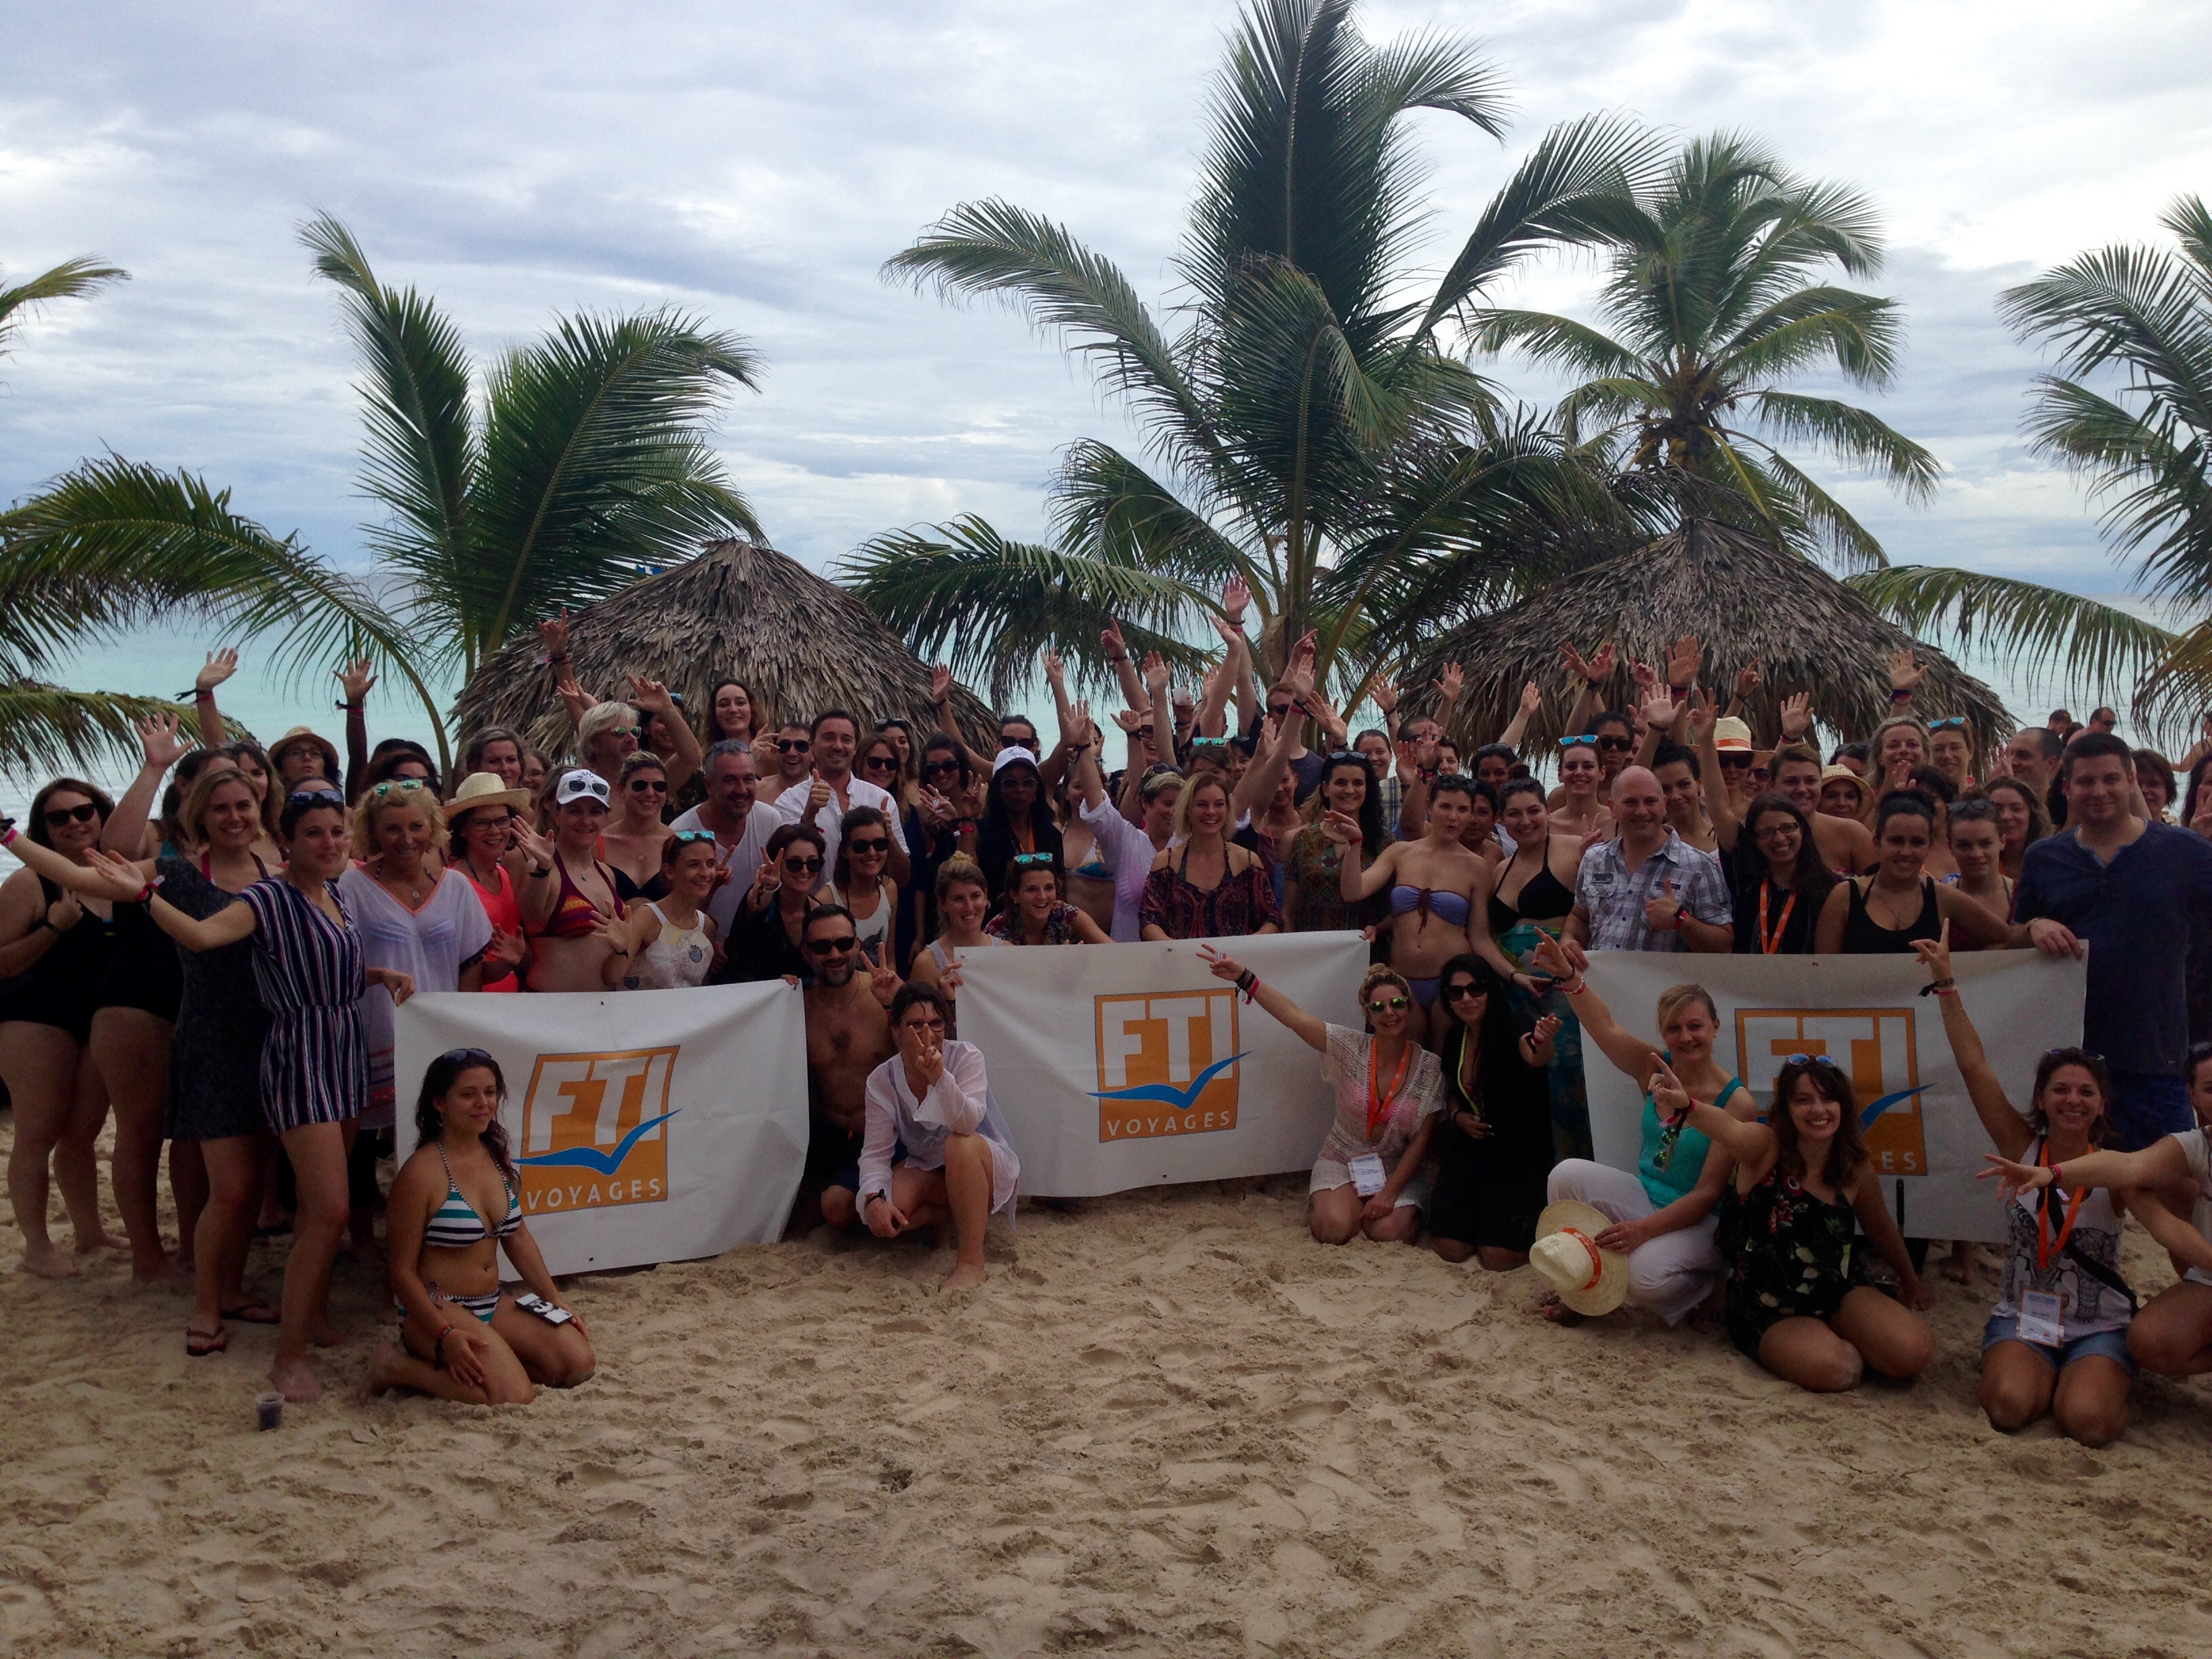 Fti voyages se lancera en b2c au 1er semestre 2018 - Office du tourisme republique dominicaine ...